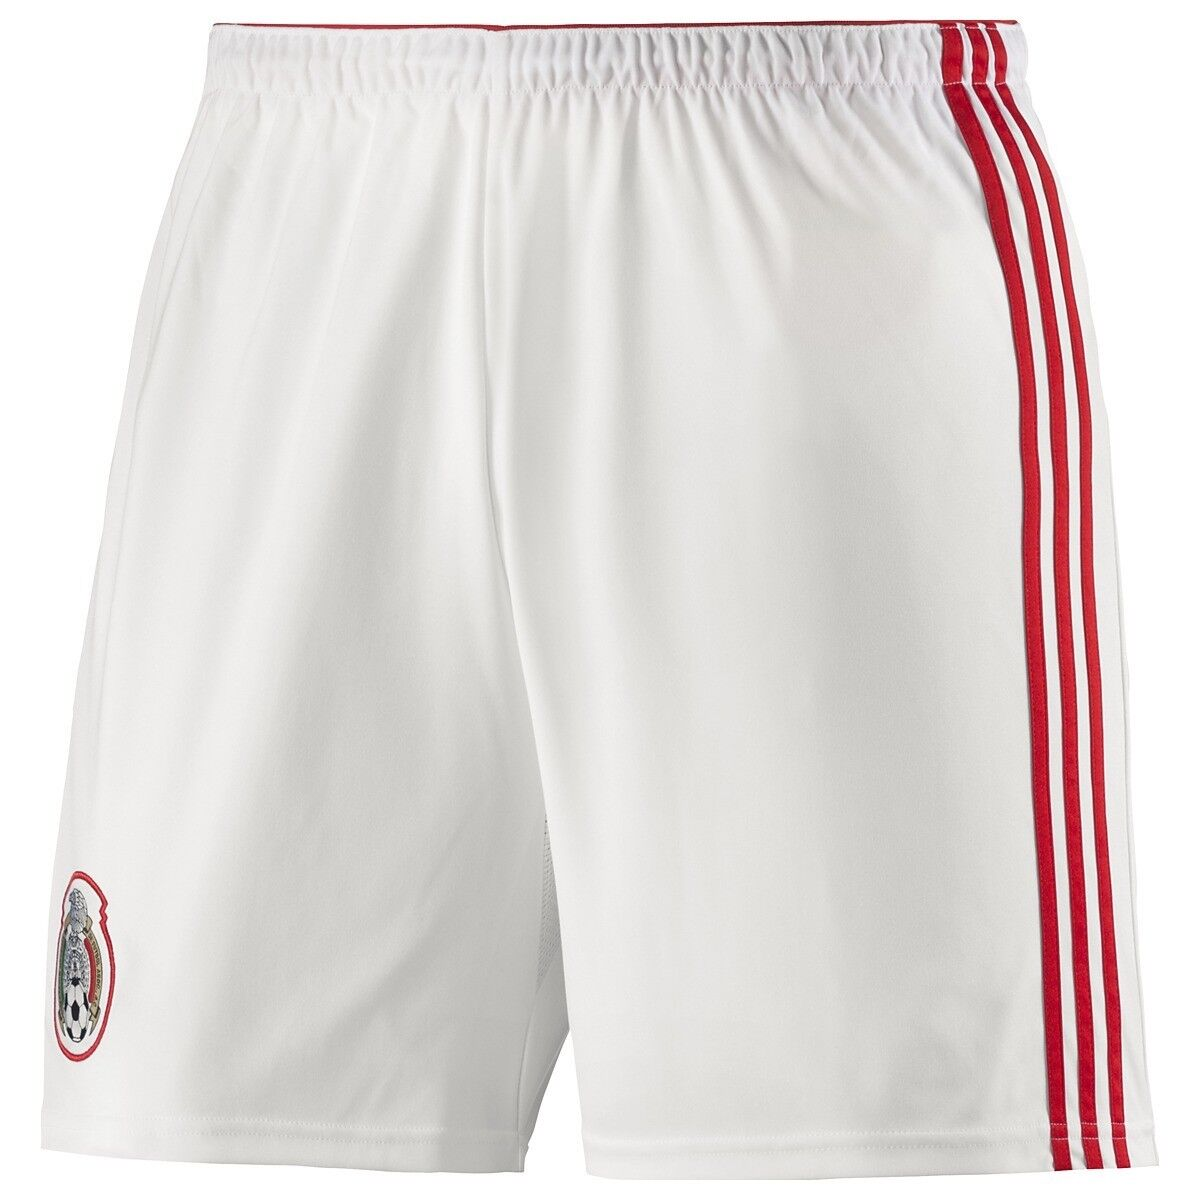 b53a1e6842 Adidas World Cup 2014 Home Soccer Shorts Brand New White Red Mexico ...